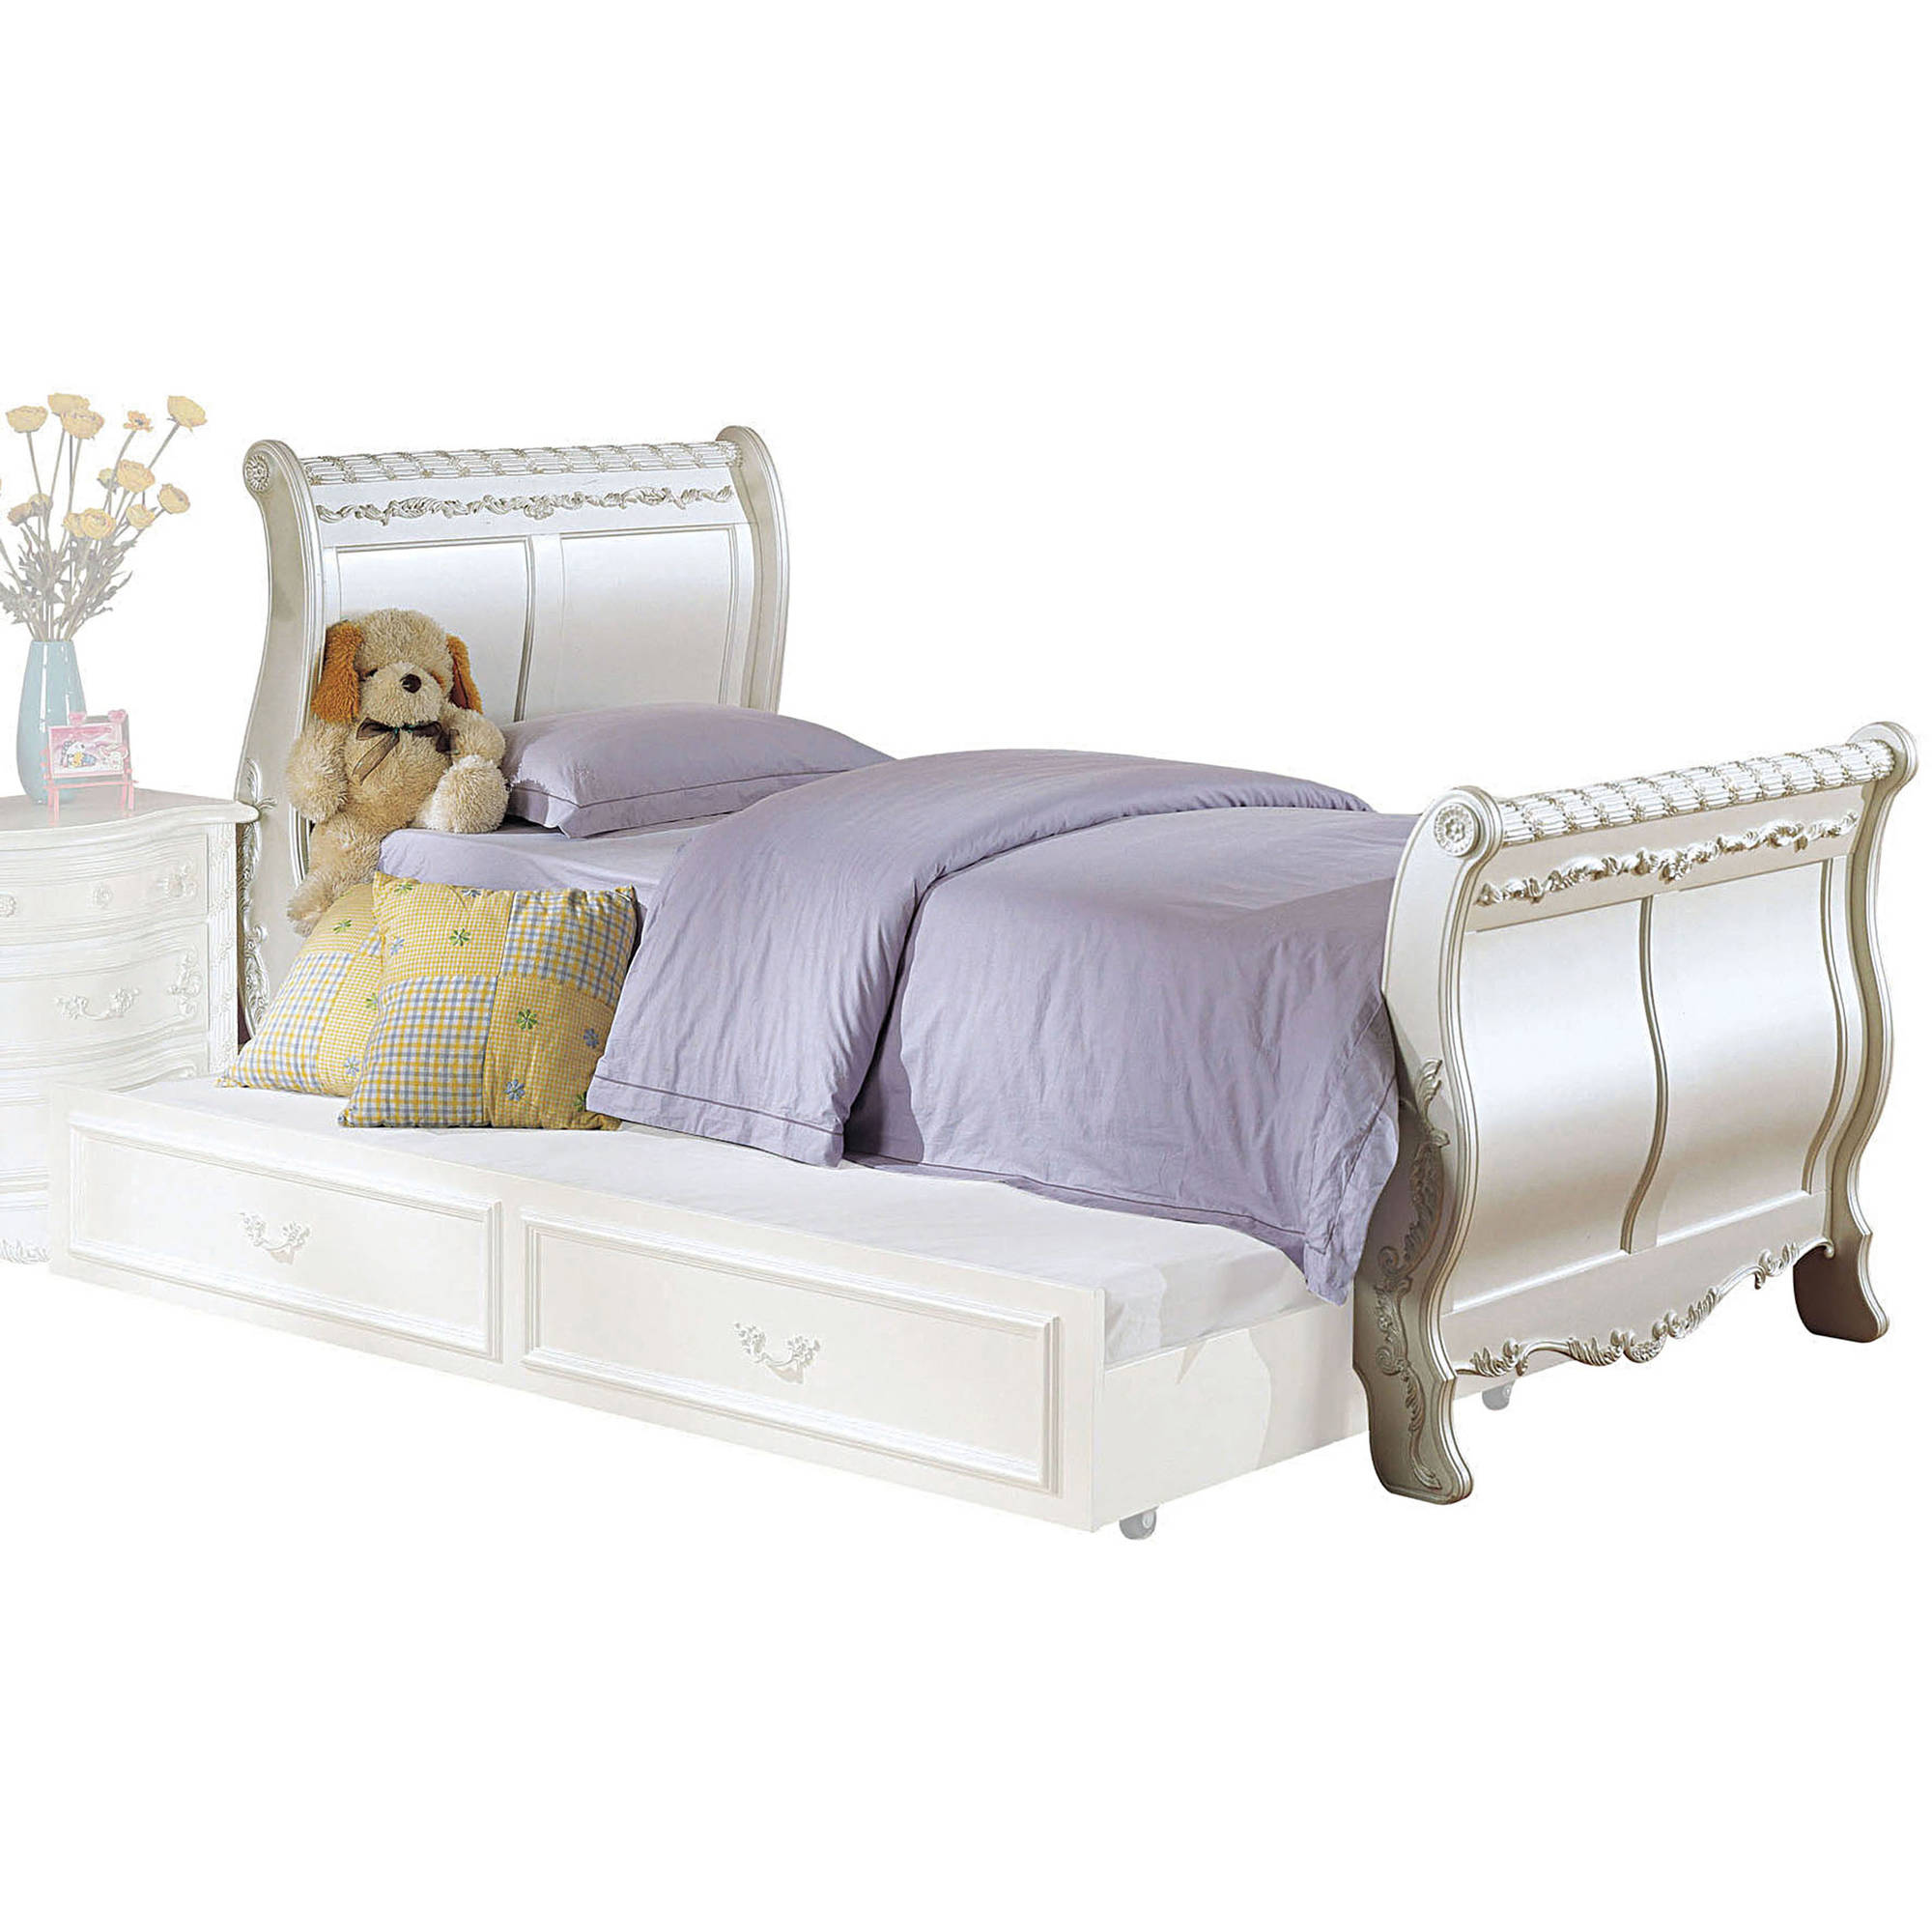 Acme Pearl Twin Sleigh Bed, Pearl White and Gold Brush Accent, Box 1 of 3 by Acme Furniture